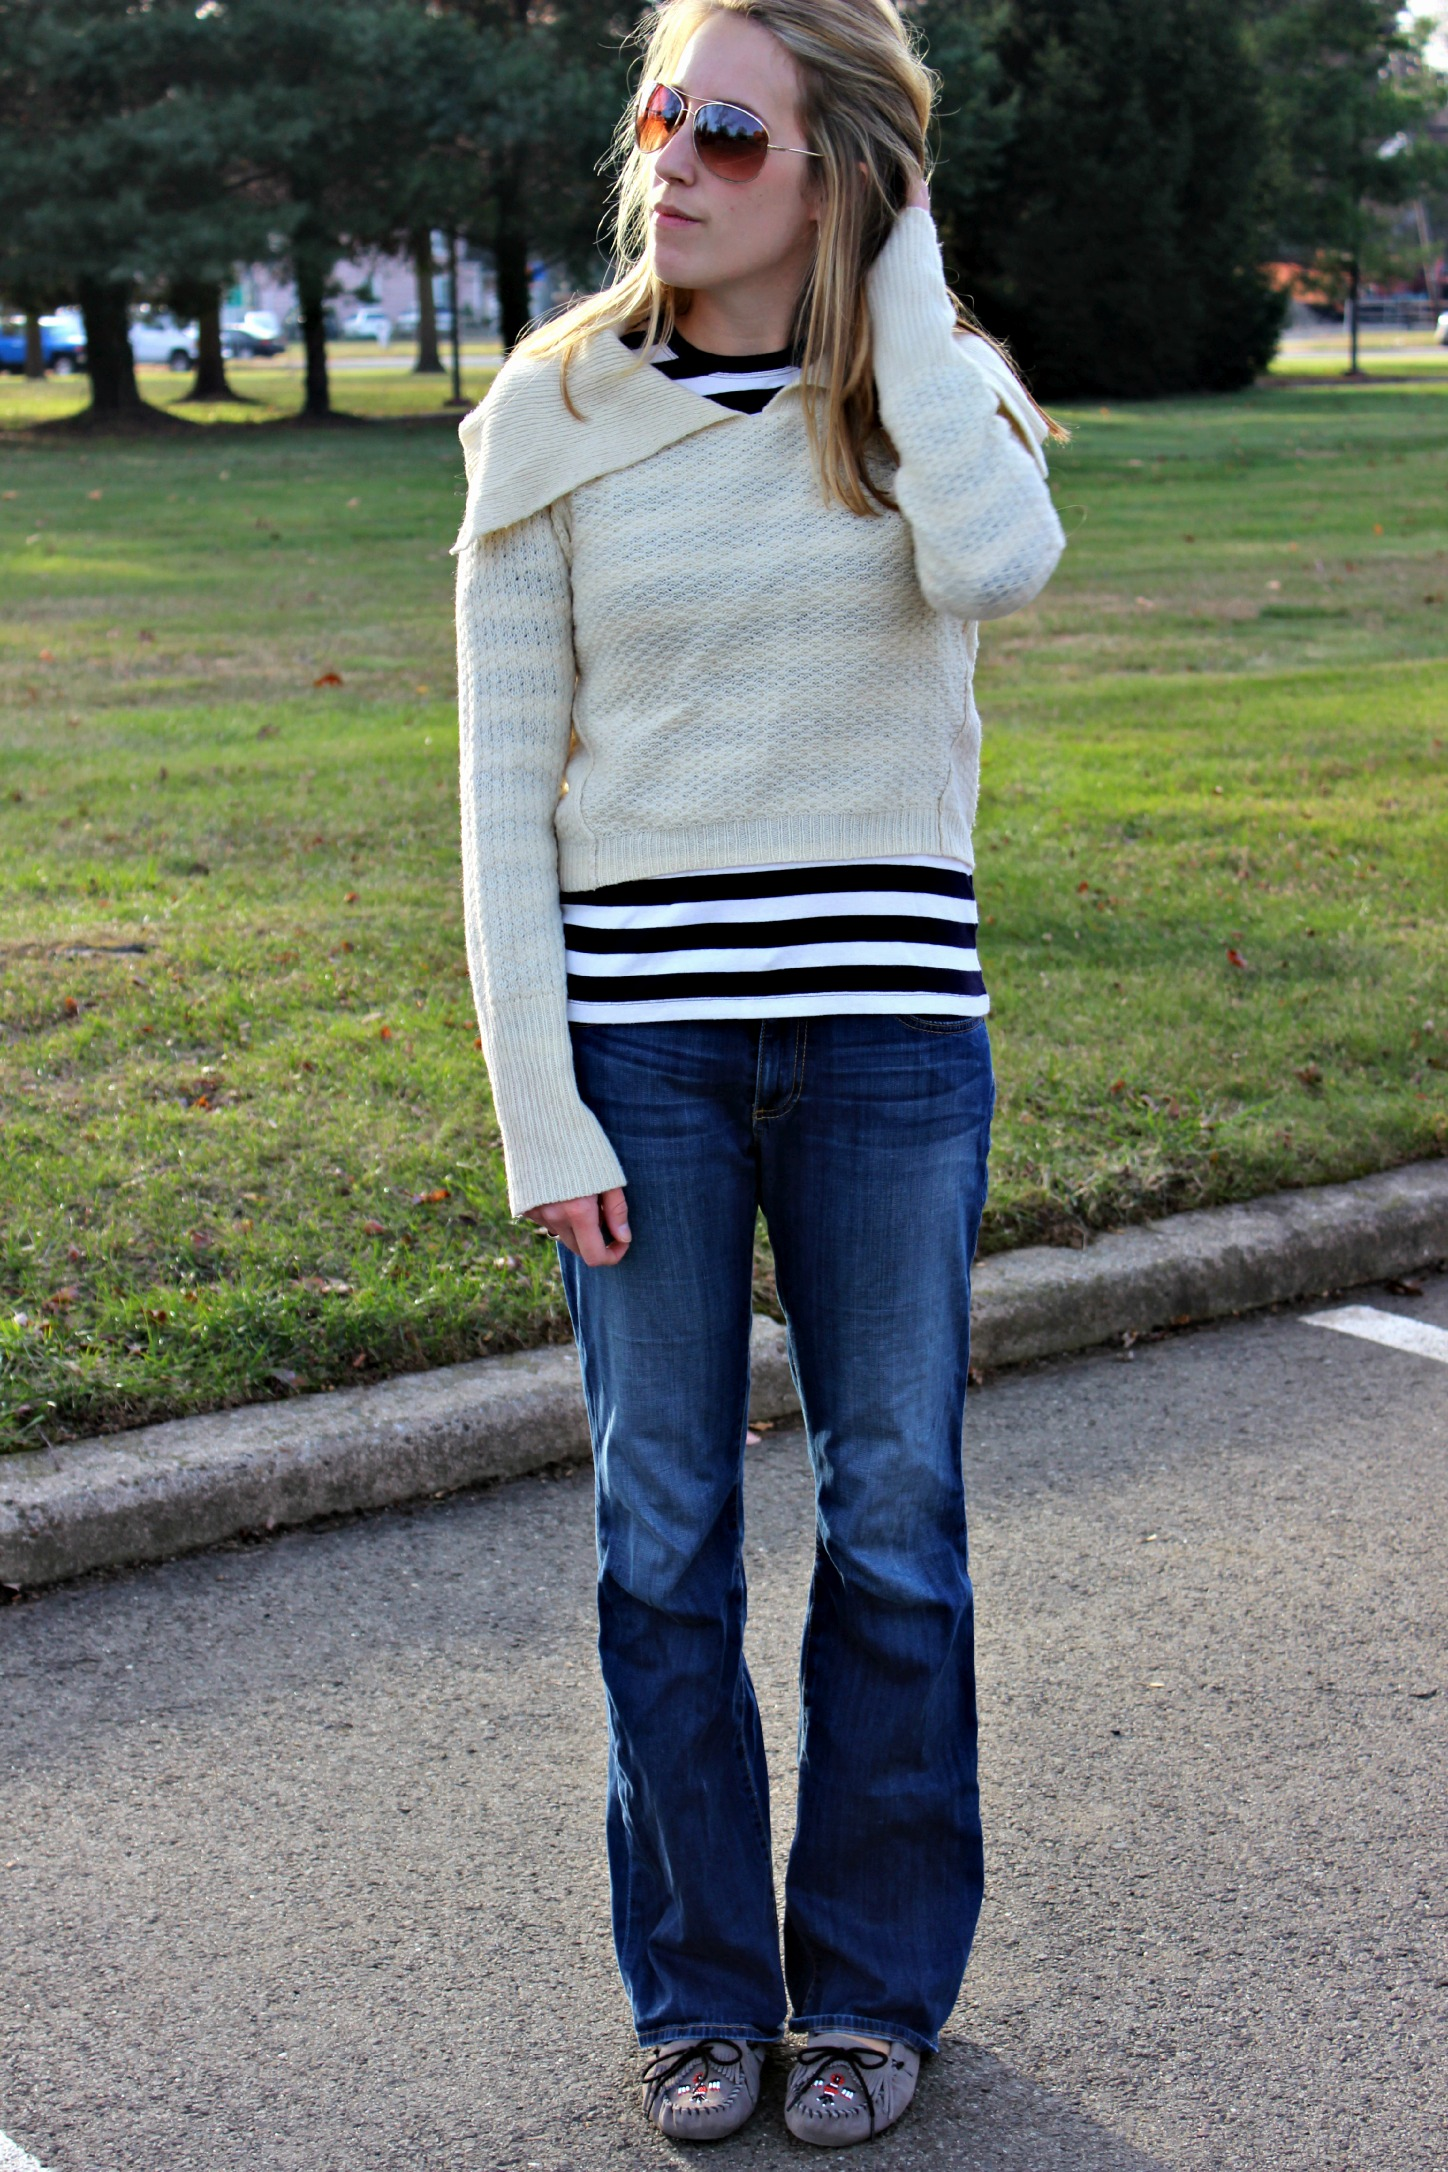 Cropped Cream Sweater for the Fall